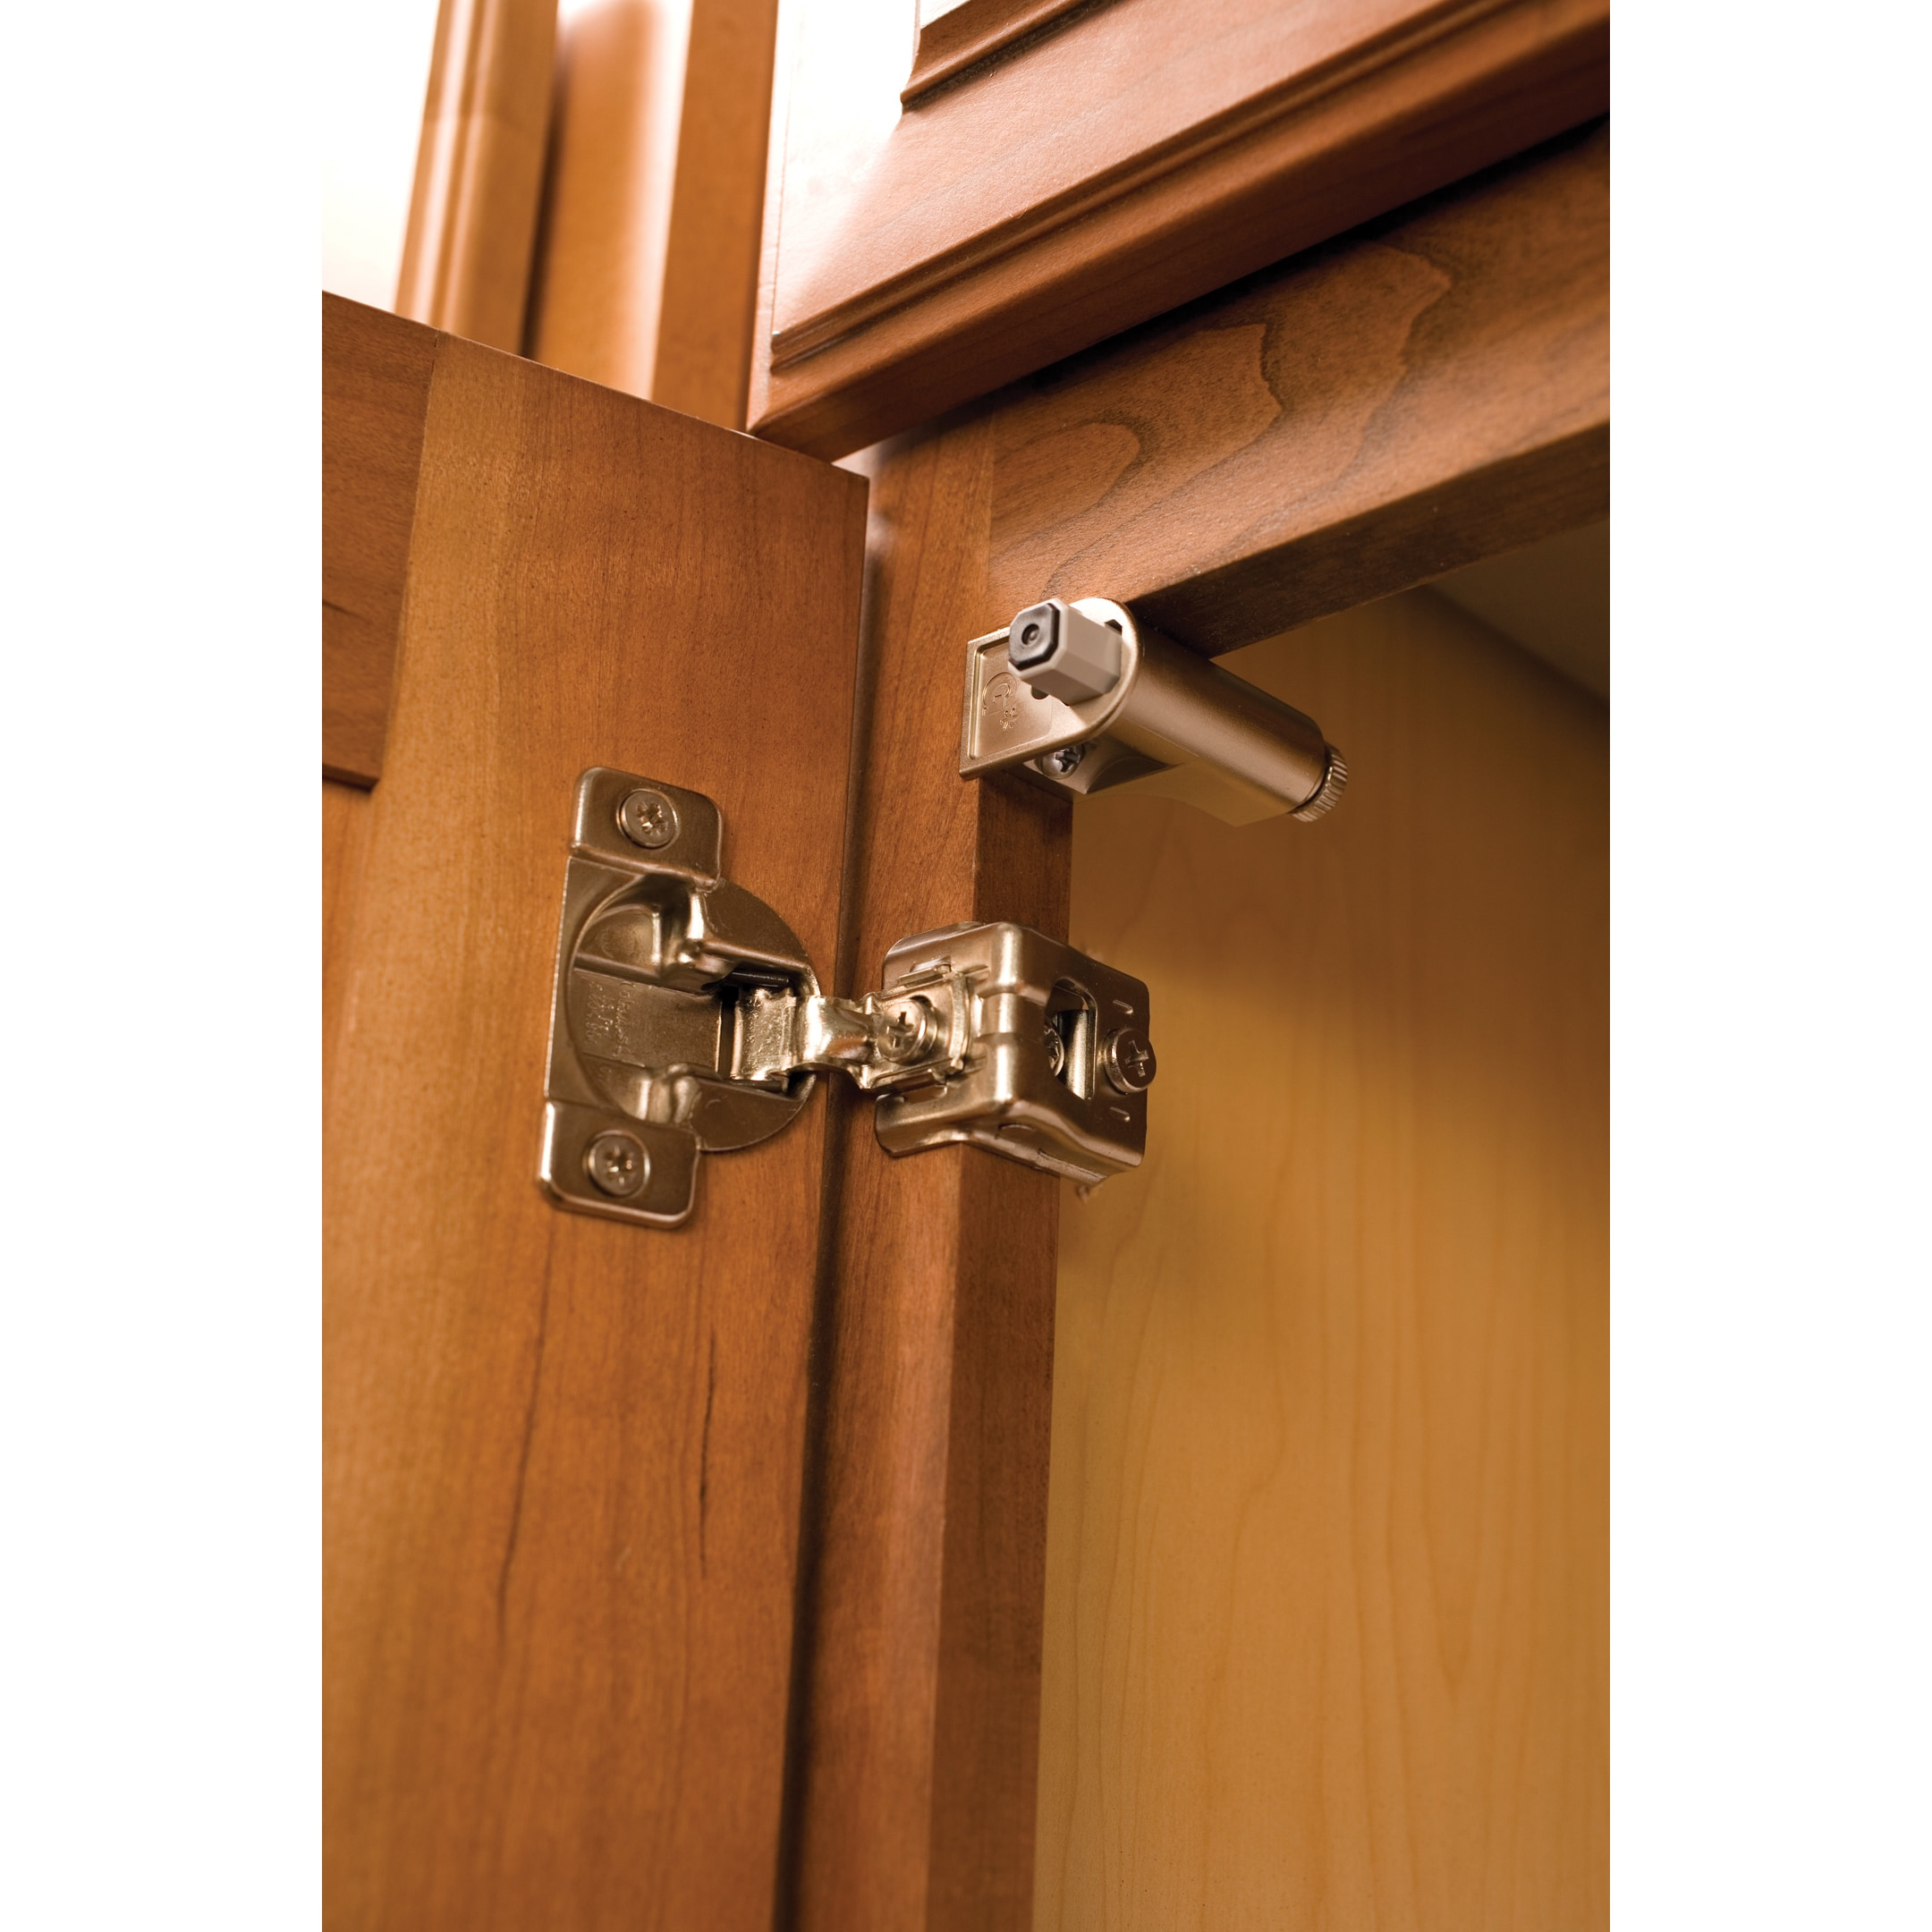 ikea damper leach new home spectacular soft pics of from close size kitchen best door full cabinet hinges photos pe